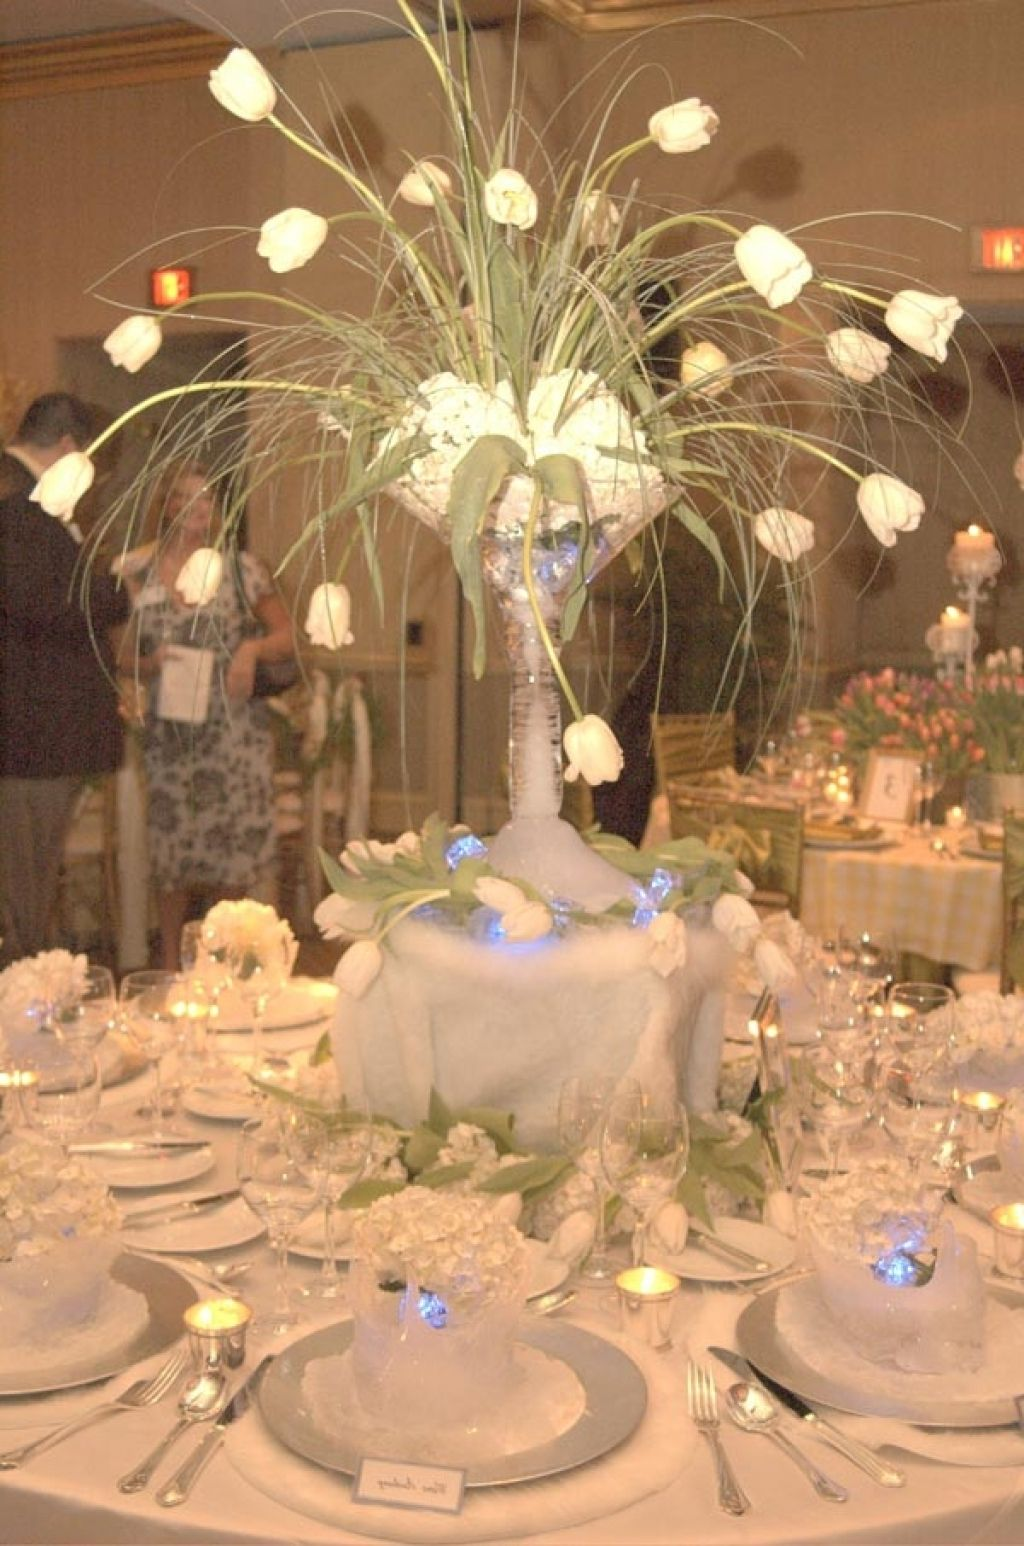 Simple wedding table centerpieces ideas wedding table for Simple wedding decoration ideas for reception